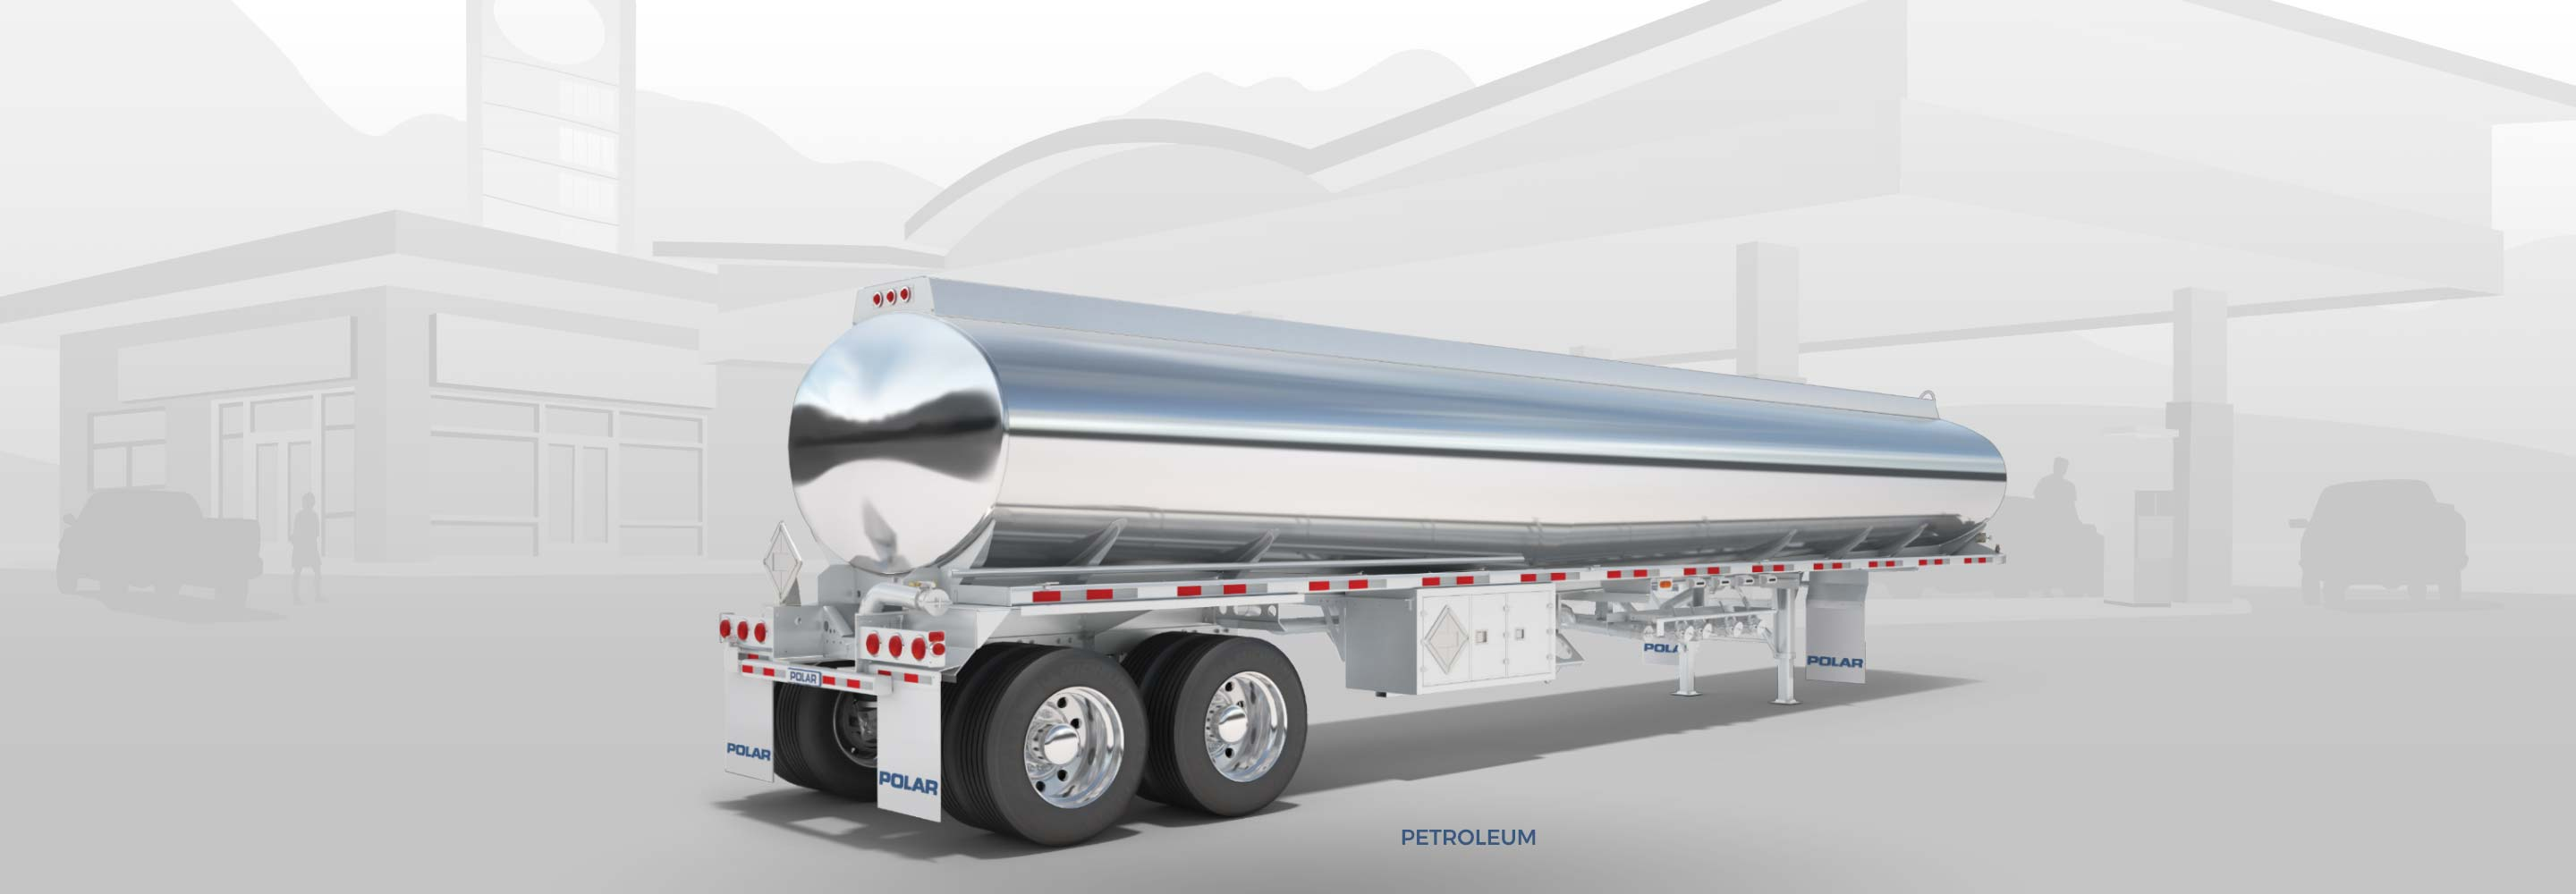 Polar Tank North Americas Largest Truck Trailer Manufacturer Kearney Wiring Diagram Fuel Your Business